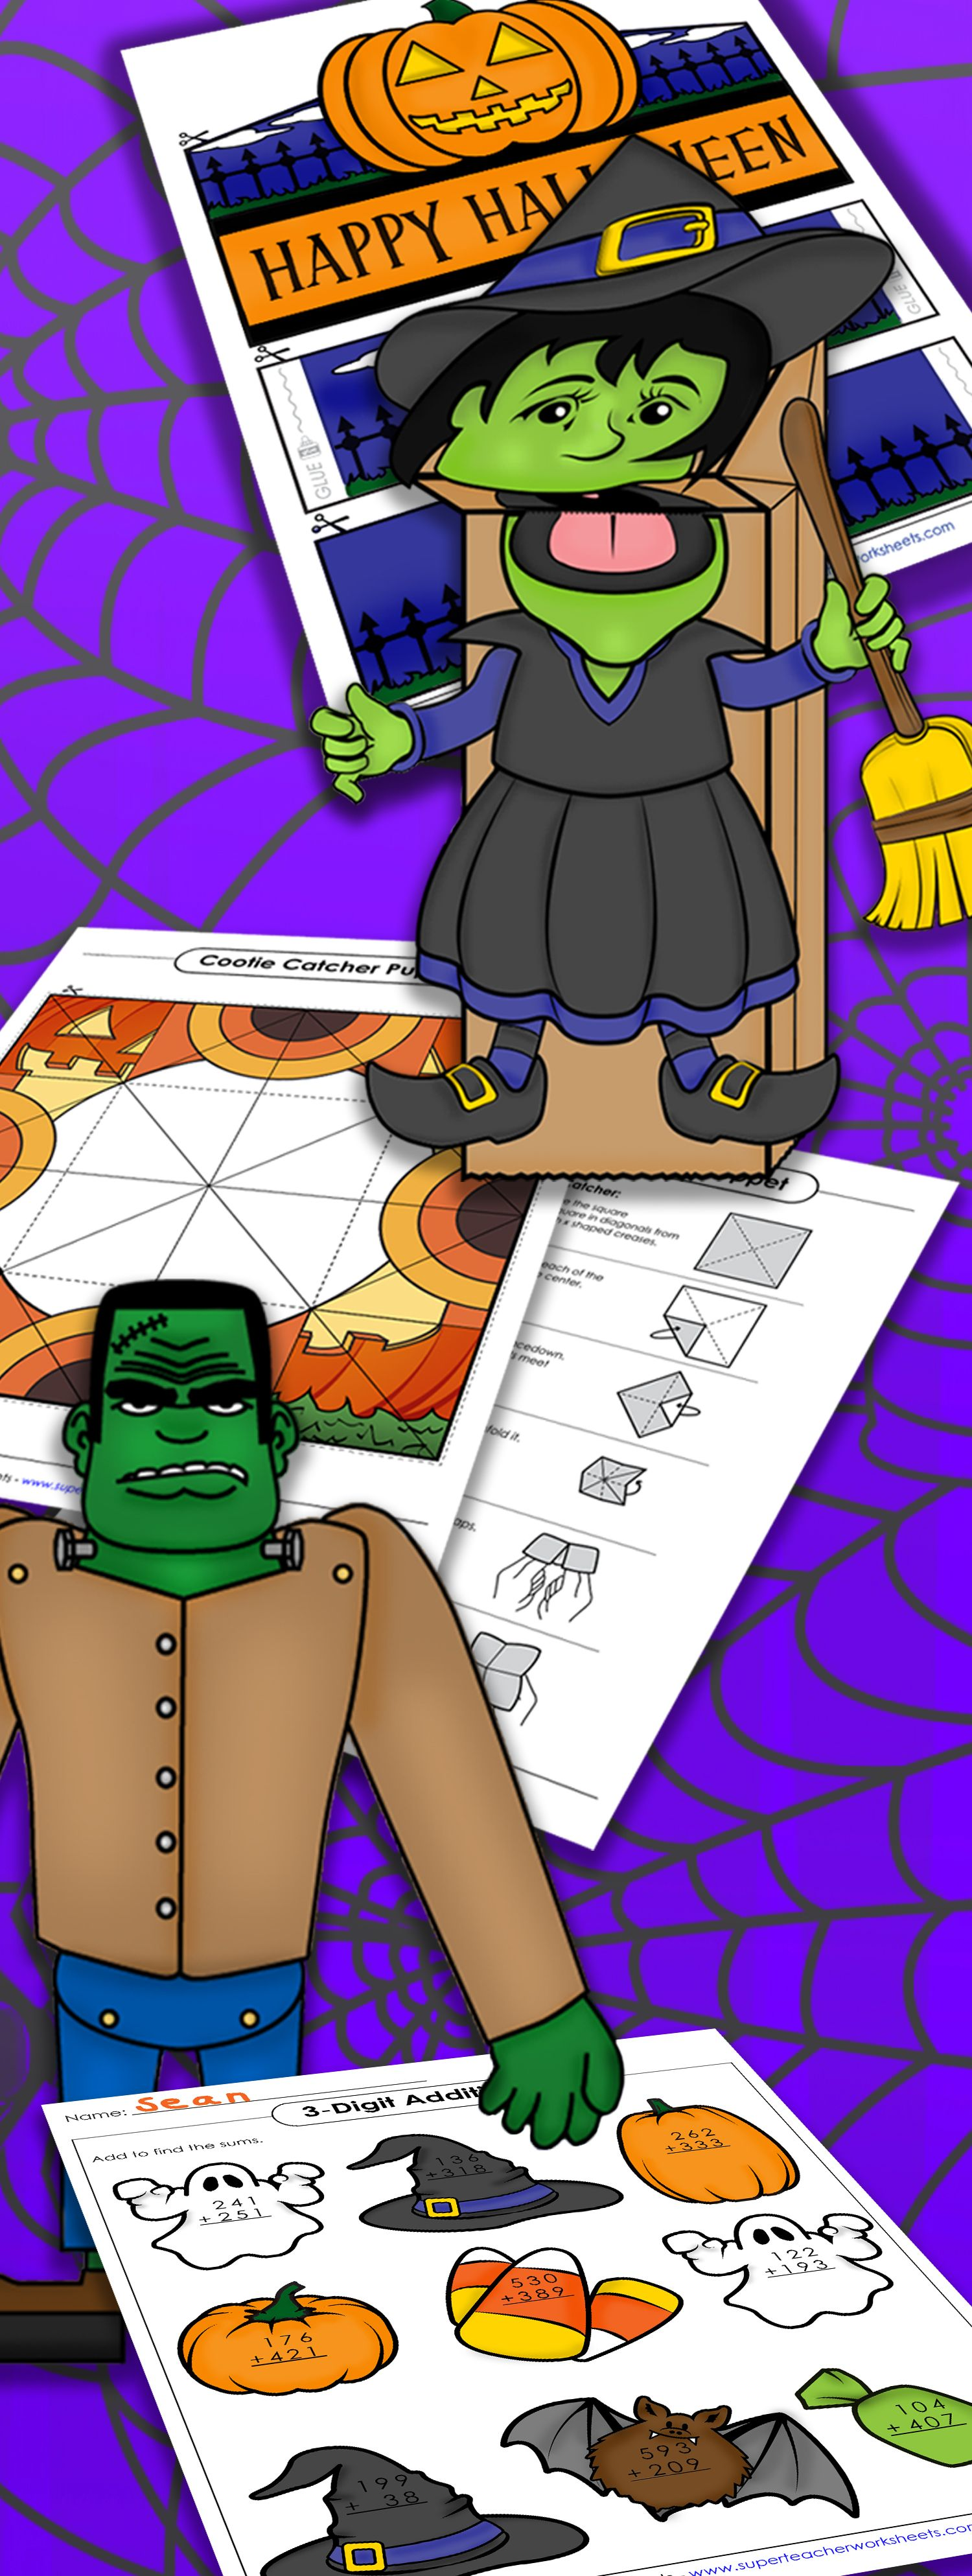 Print Out Spooky And Silly Halloween Activities From